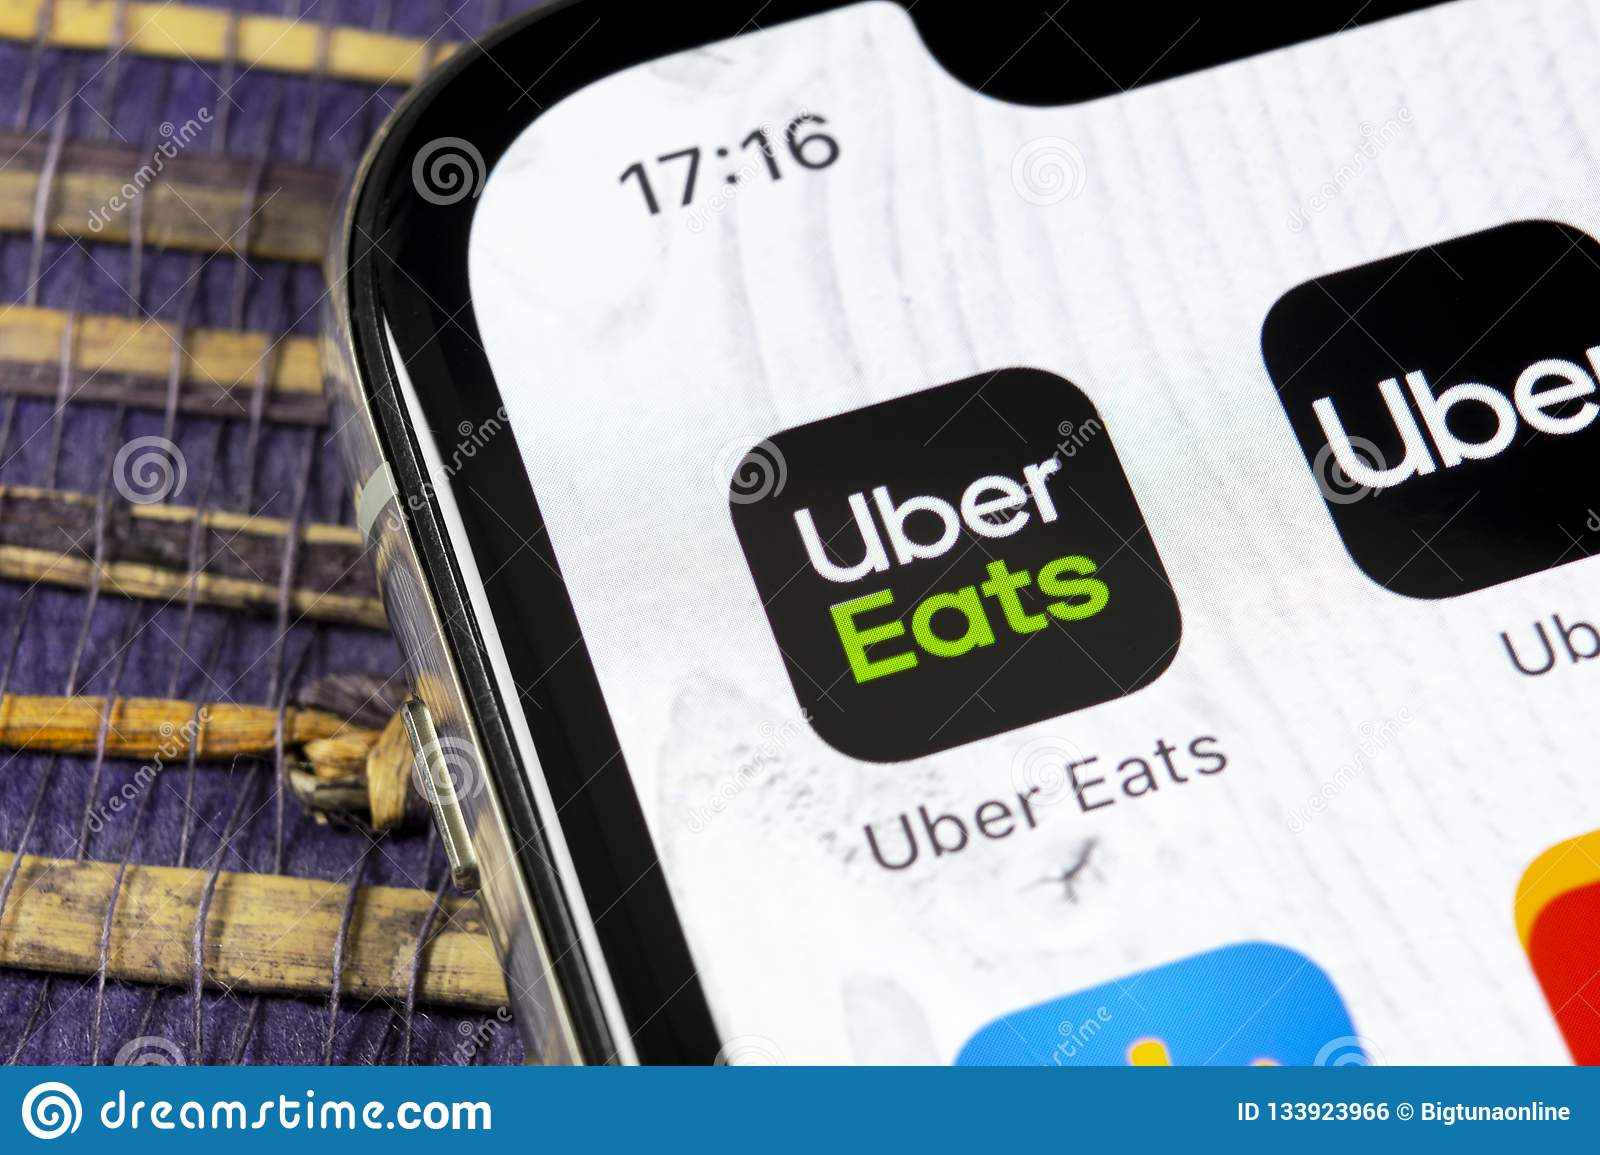 Uber Eats Application Icon On Apple IPhone X Smartphone Screen Close